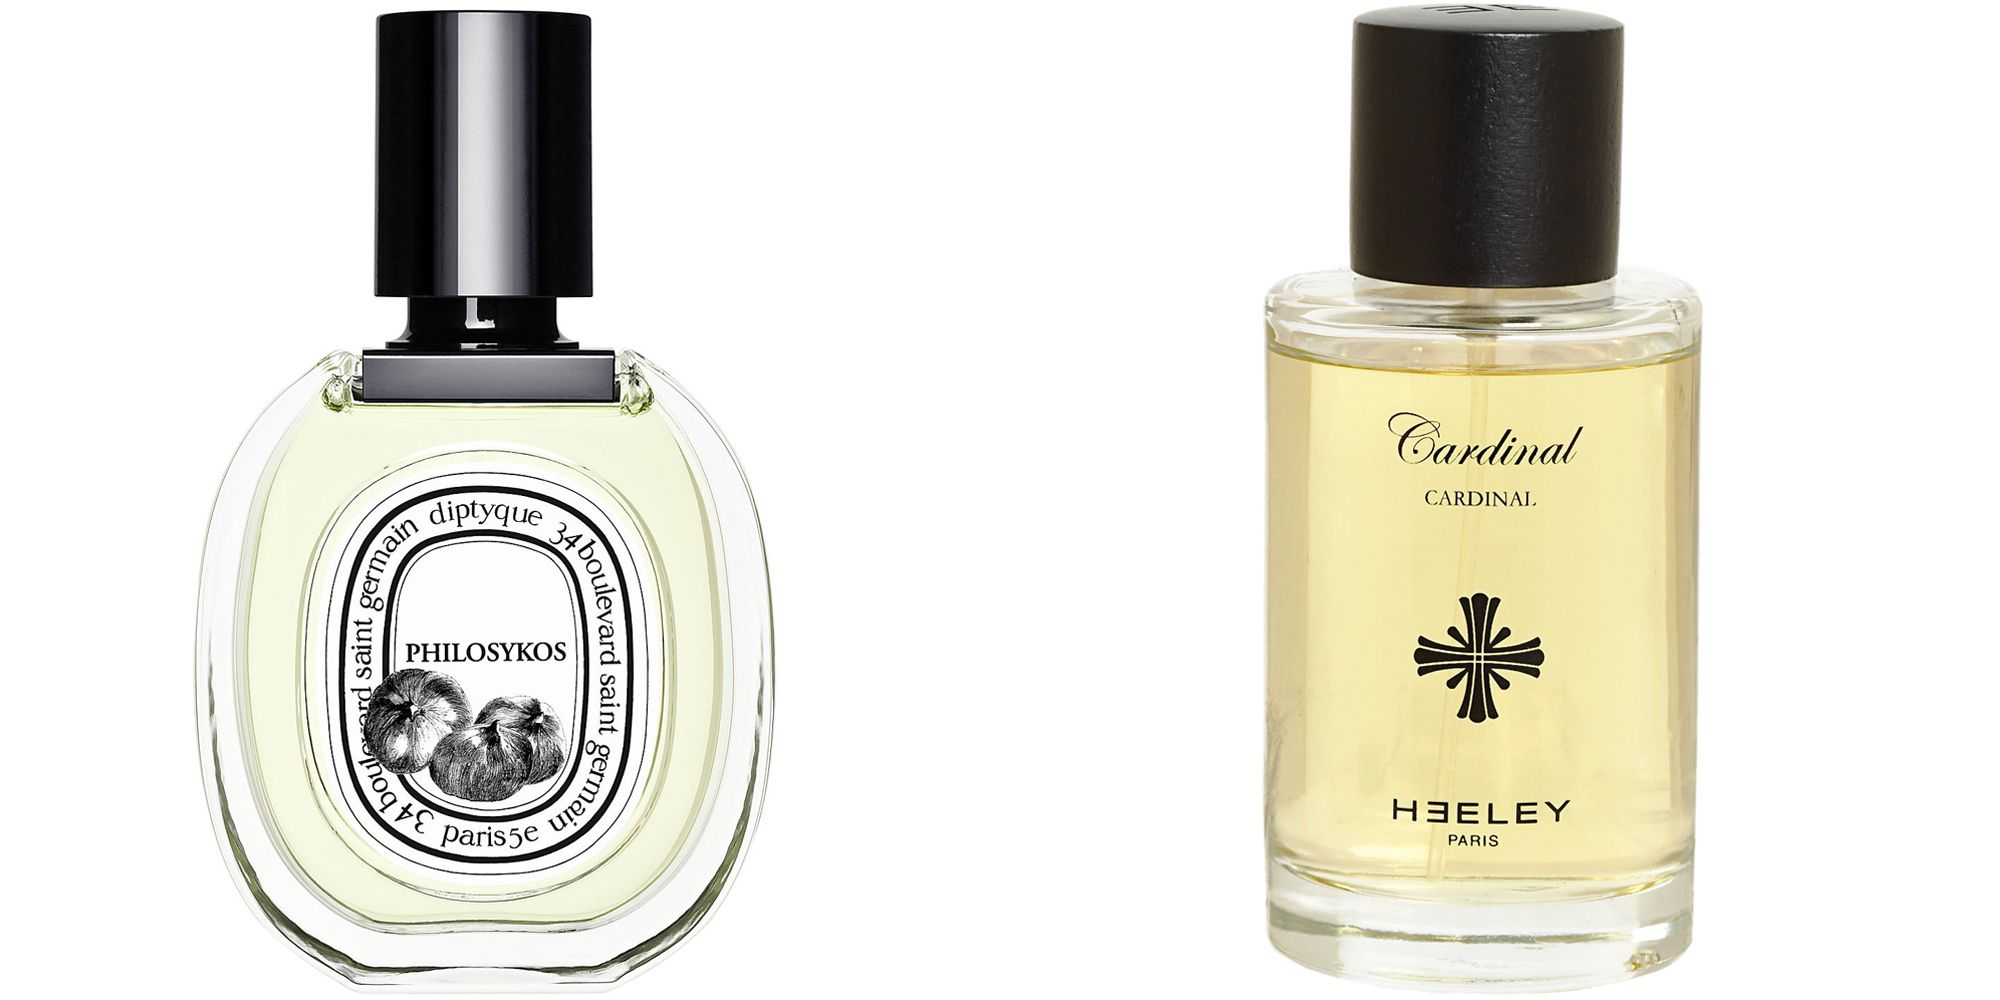 "<p>""I alternate between two fragrances depending on the season: Cardinal from Heely and Philosokos from Diptyque.  Cardinal is lighter for warmer months and Philosokos for the cold.""</p> <p><strong>Diptyque</strong> Philosykos, $125, <a href=""http://www.diptyqueparis.com/philosykos-edt.html"">diptyqueparis.com</a>; <strong>Heely</strong> Cardinal, $180, <a href=""http://www.luckyscent.com/product/31505/cardinal-by-heeley?utm_source=google-base&utm_medium=cpc&utm_campaign=google-base&gclid=CK2IsMmiq8MCFcXm7AodzEsA-A"">luckyscent.com</a>.</p>"